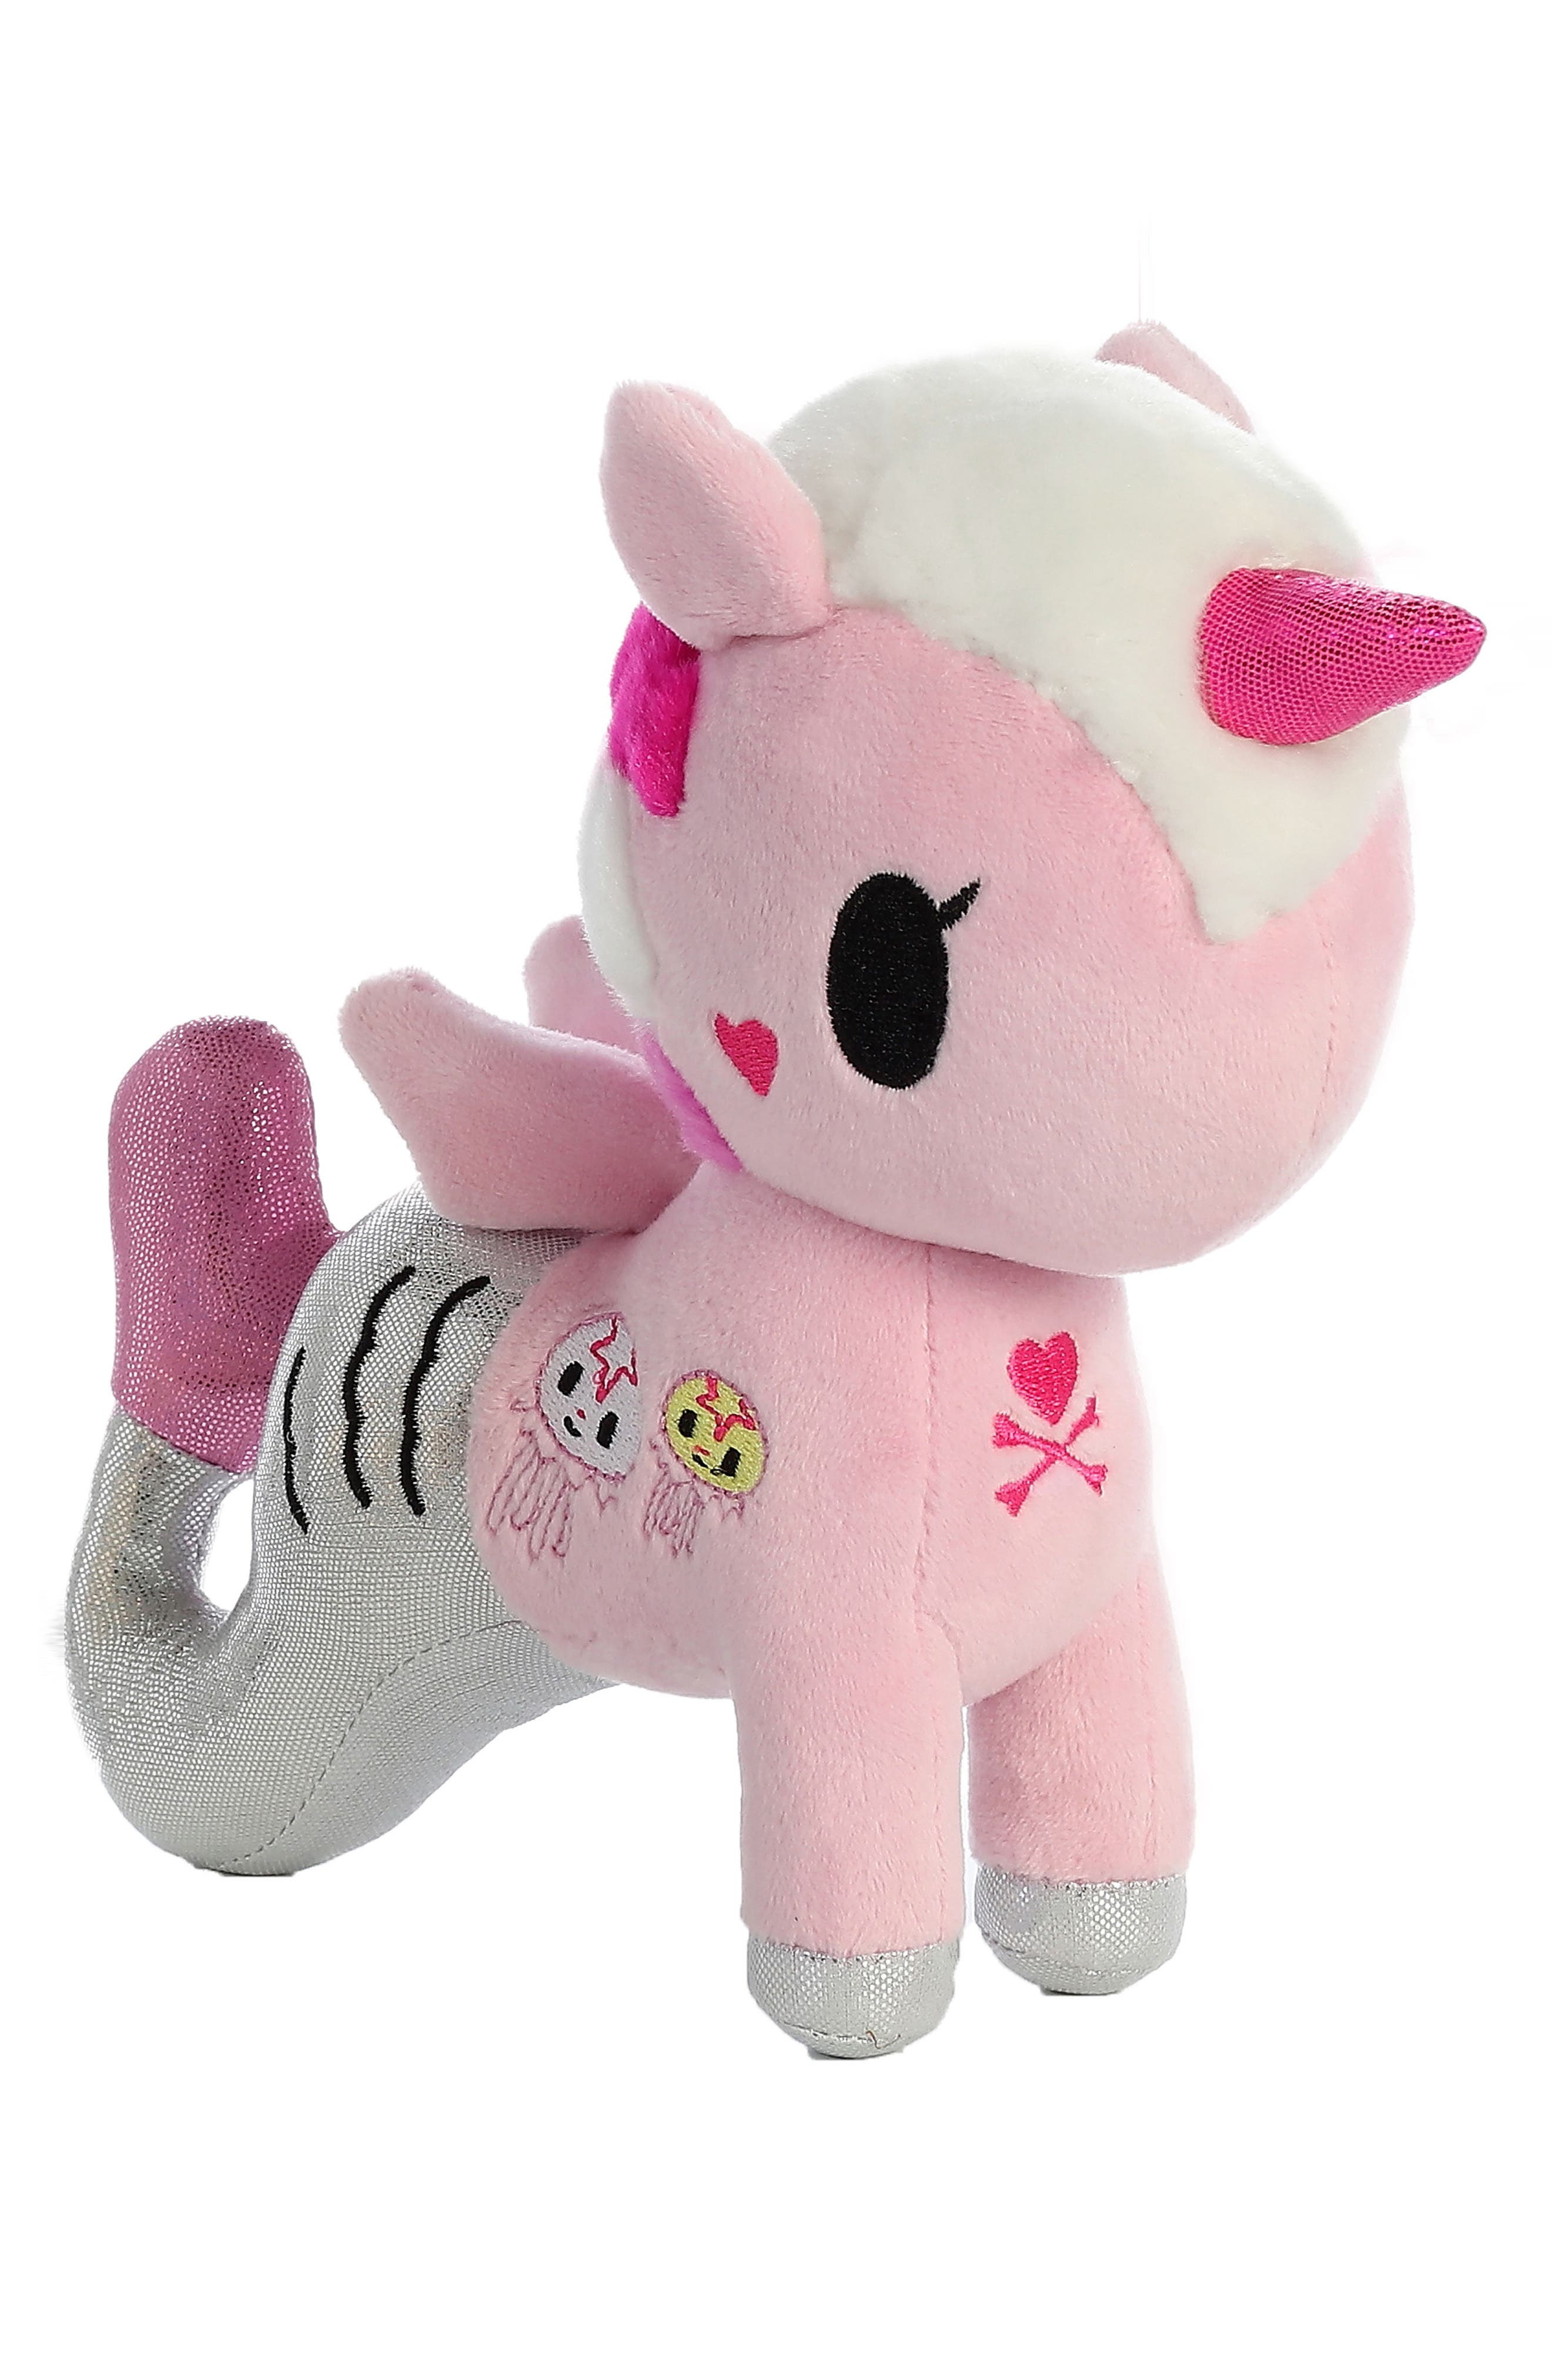 x tokidoki Gelatina Mermicorno Stuffed Animal,                             Main thumbnail 1, color,                             650